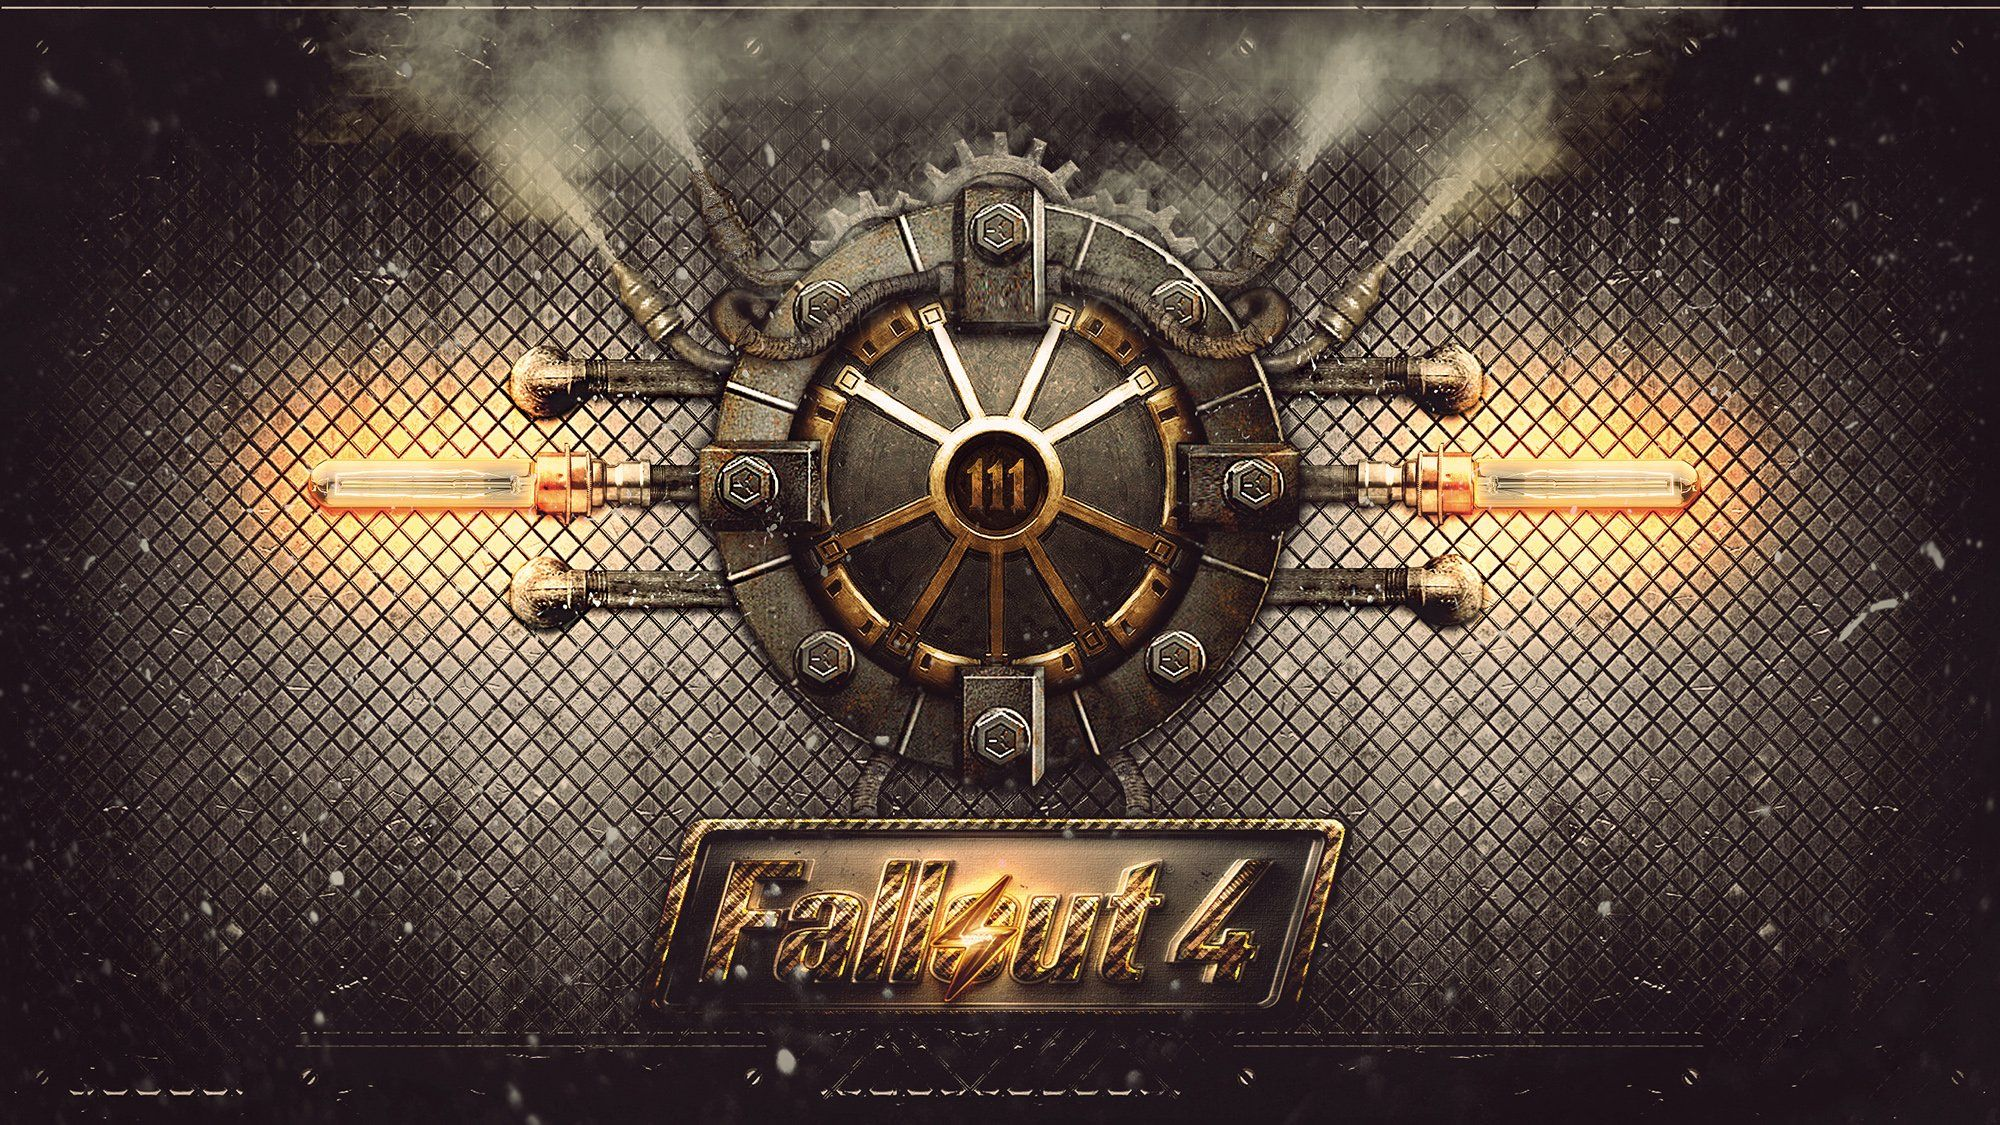 Fallout 4 Vault Wallpapers - Top Free